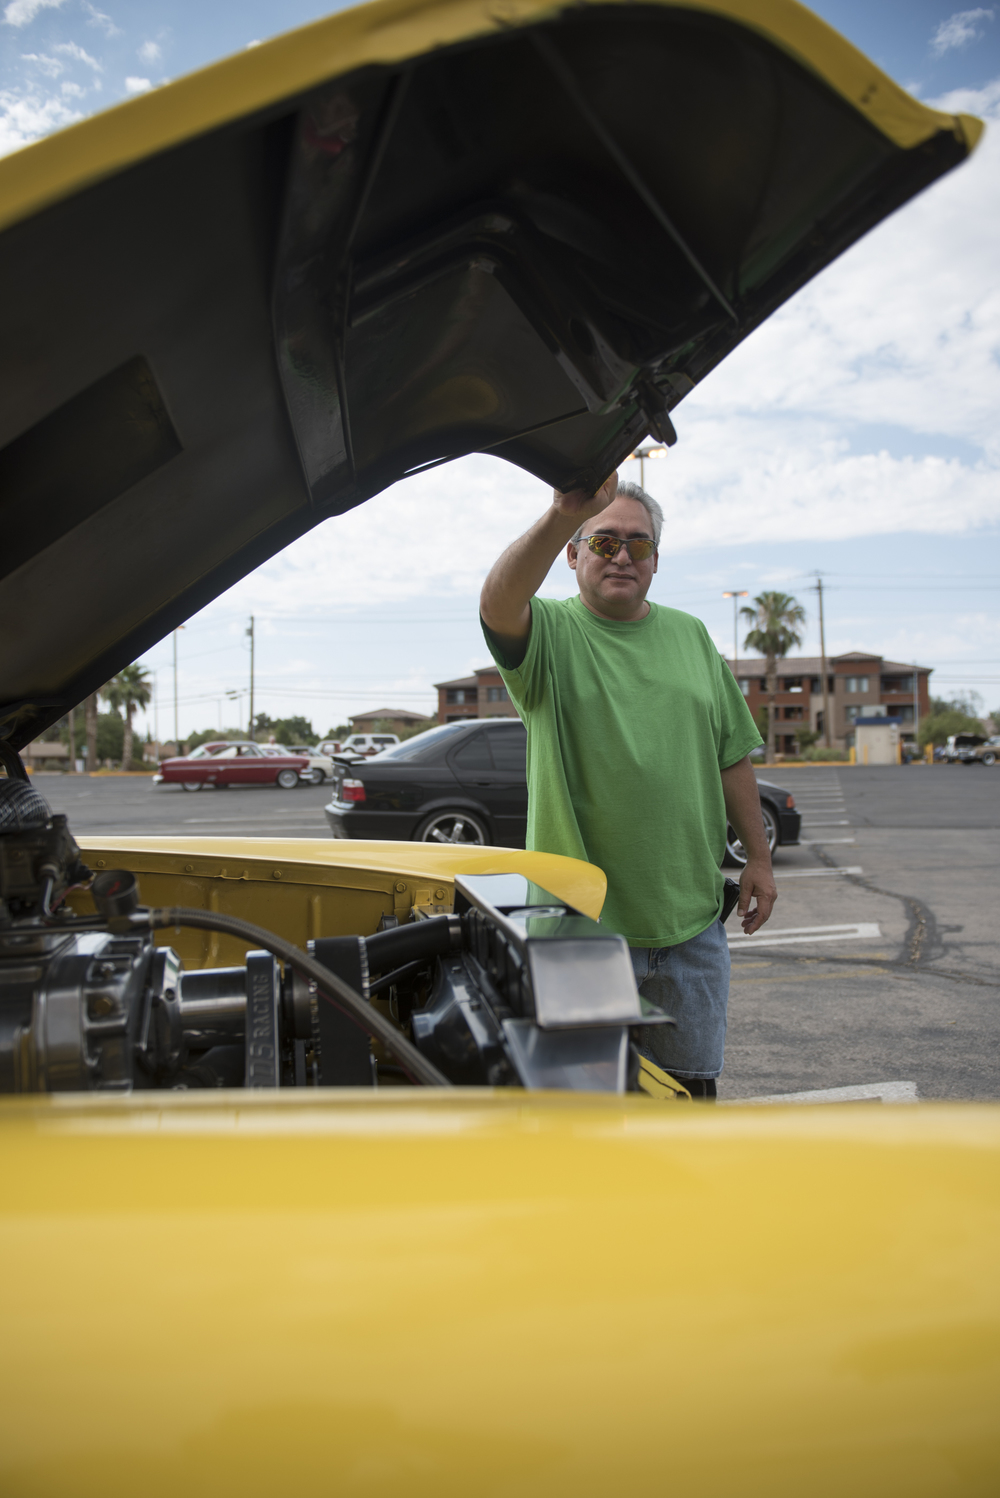 Les Rodriques poses for a photo with his car at the West End Boys car gathering in the Vons parking lot at 6000 West Cheyenne Avenue in Las Vegas, Sunday, July 5, 2015.(Jason Ogulnik/Las Vegas Review-Journal)